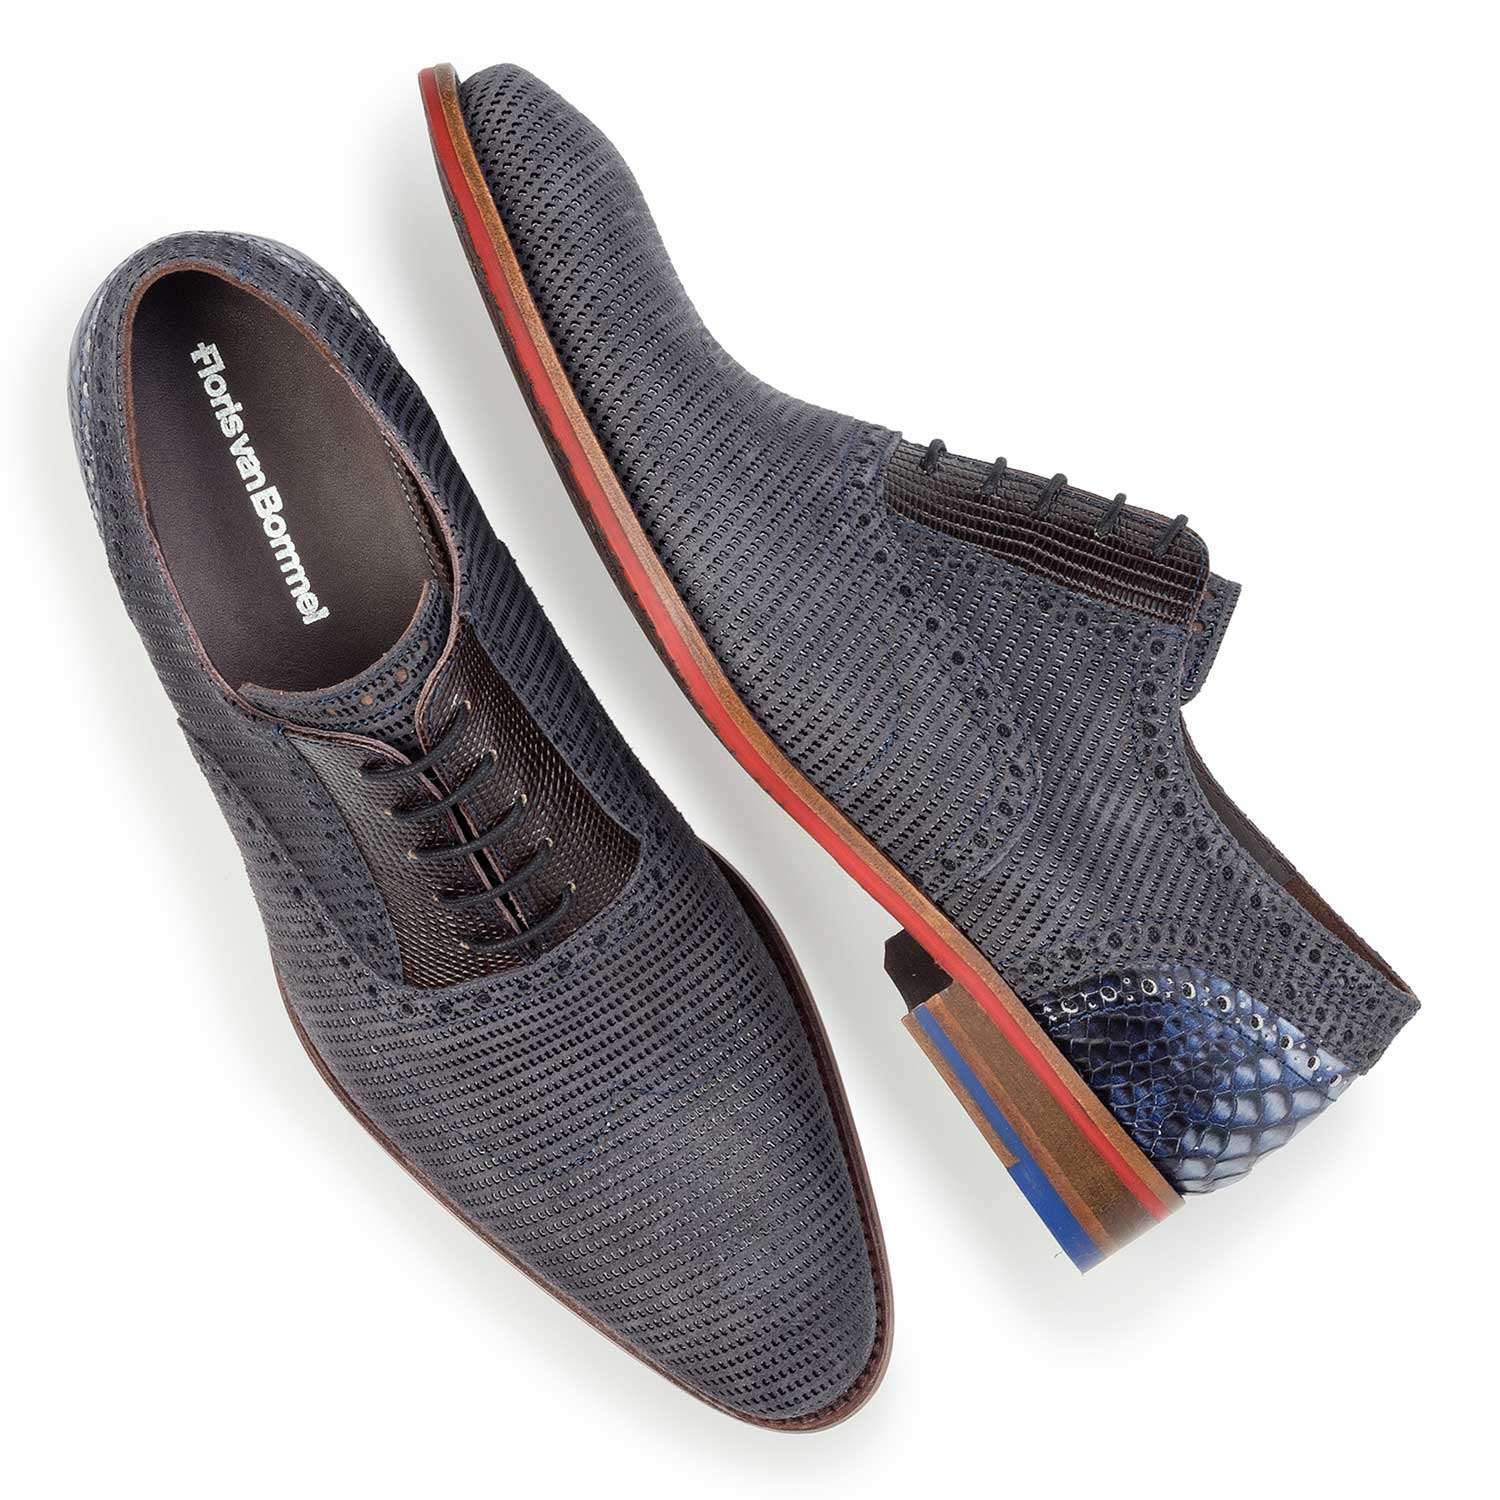 19114/05 - Dark grey patterned lace shoe made of suede leather